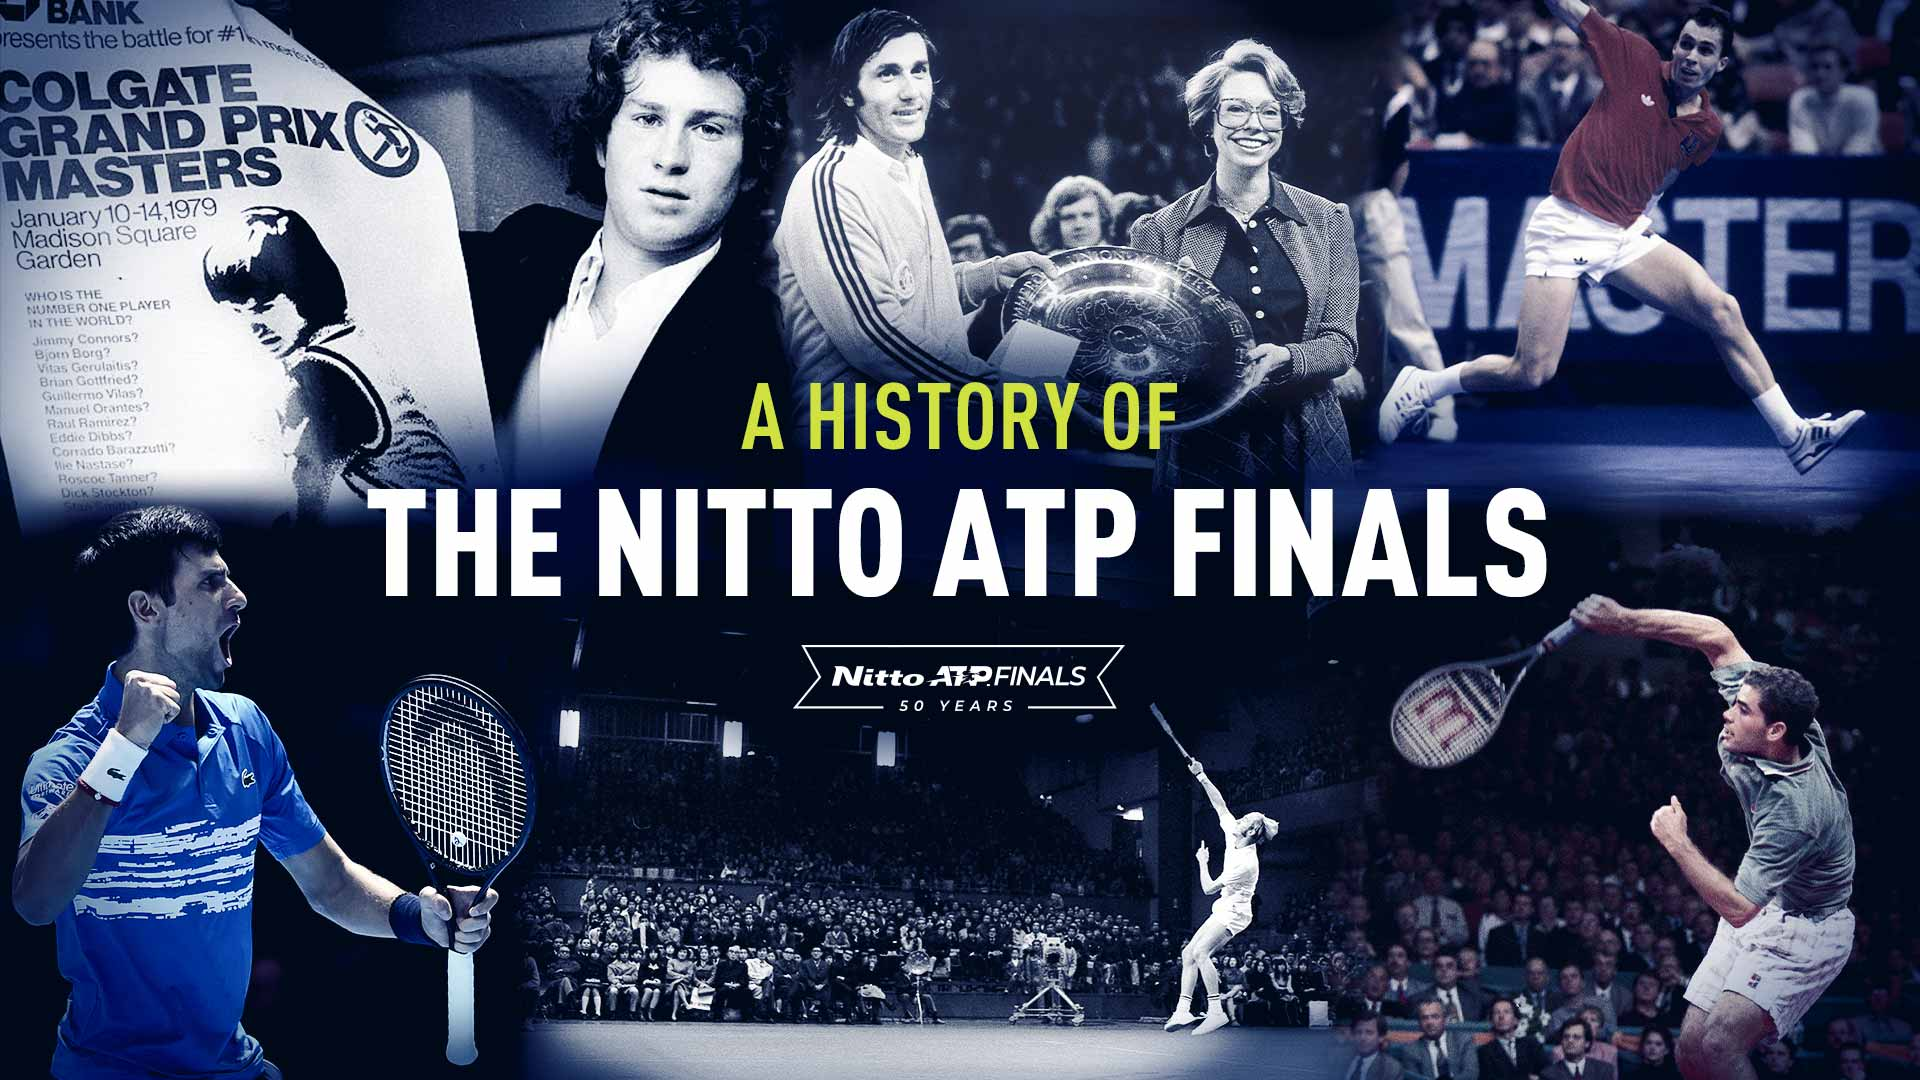 Nitto ATP Finals 50 Years